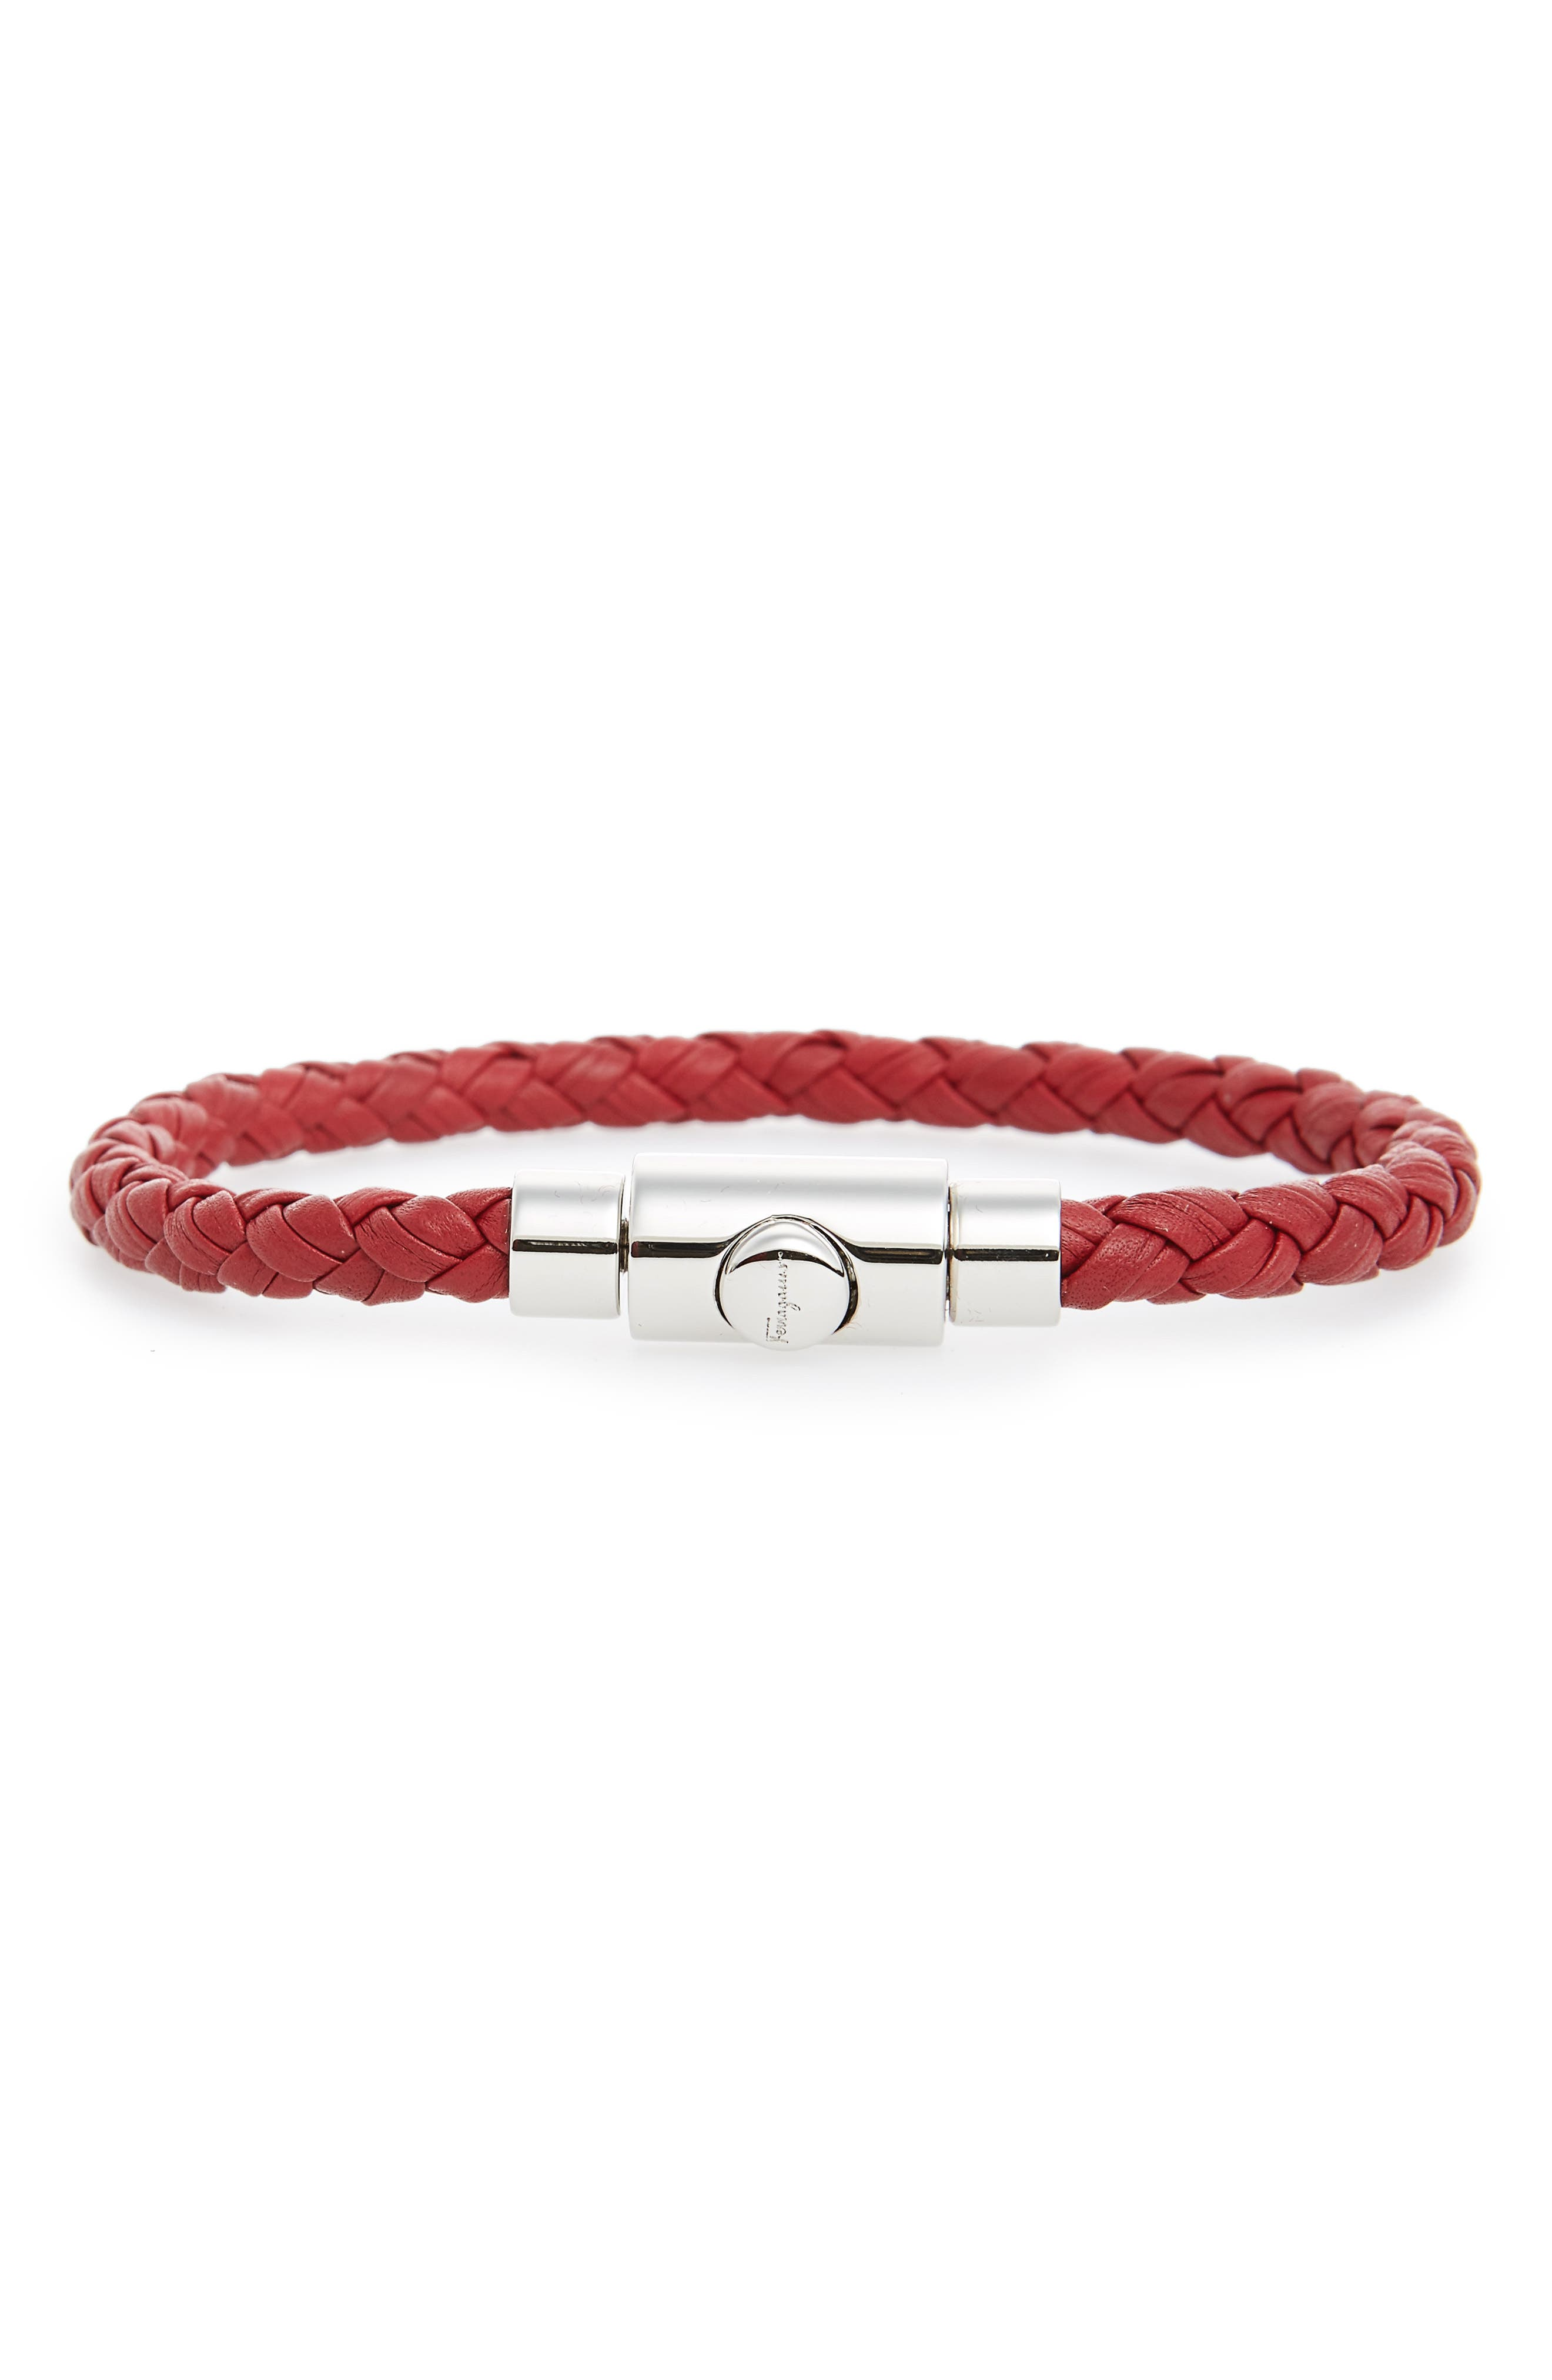 Braided Leather Bracelet,                             Main thumbnail 1, color,                             Red